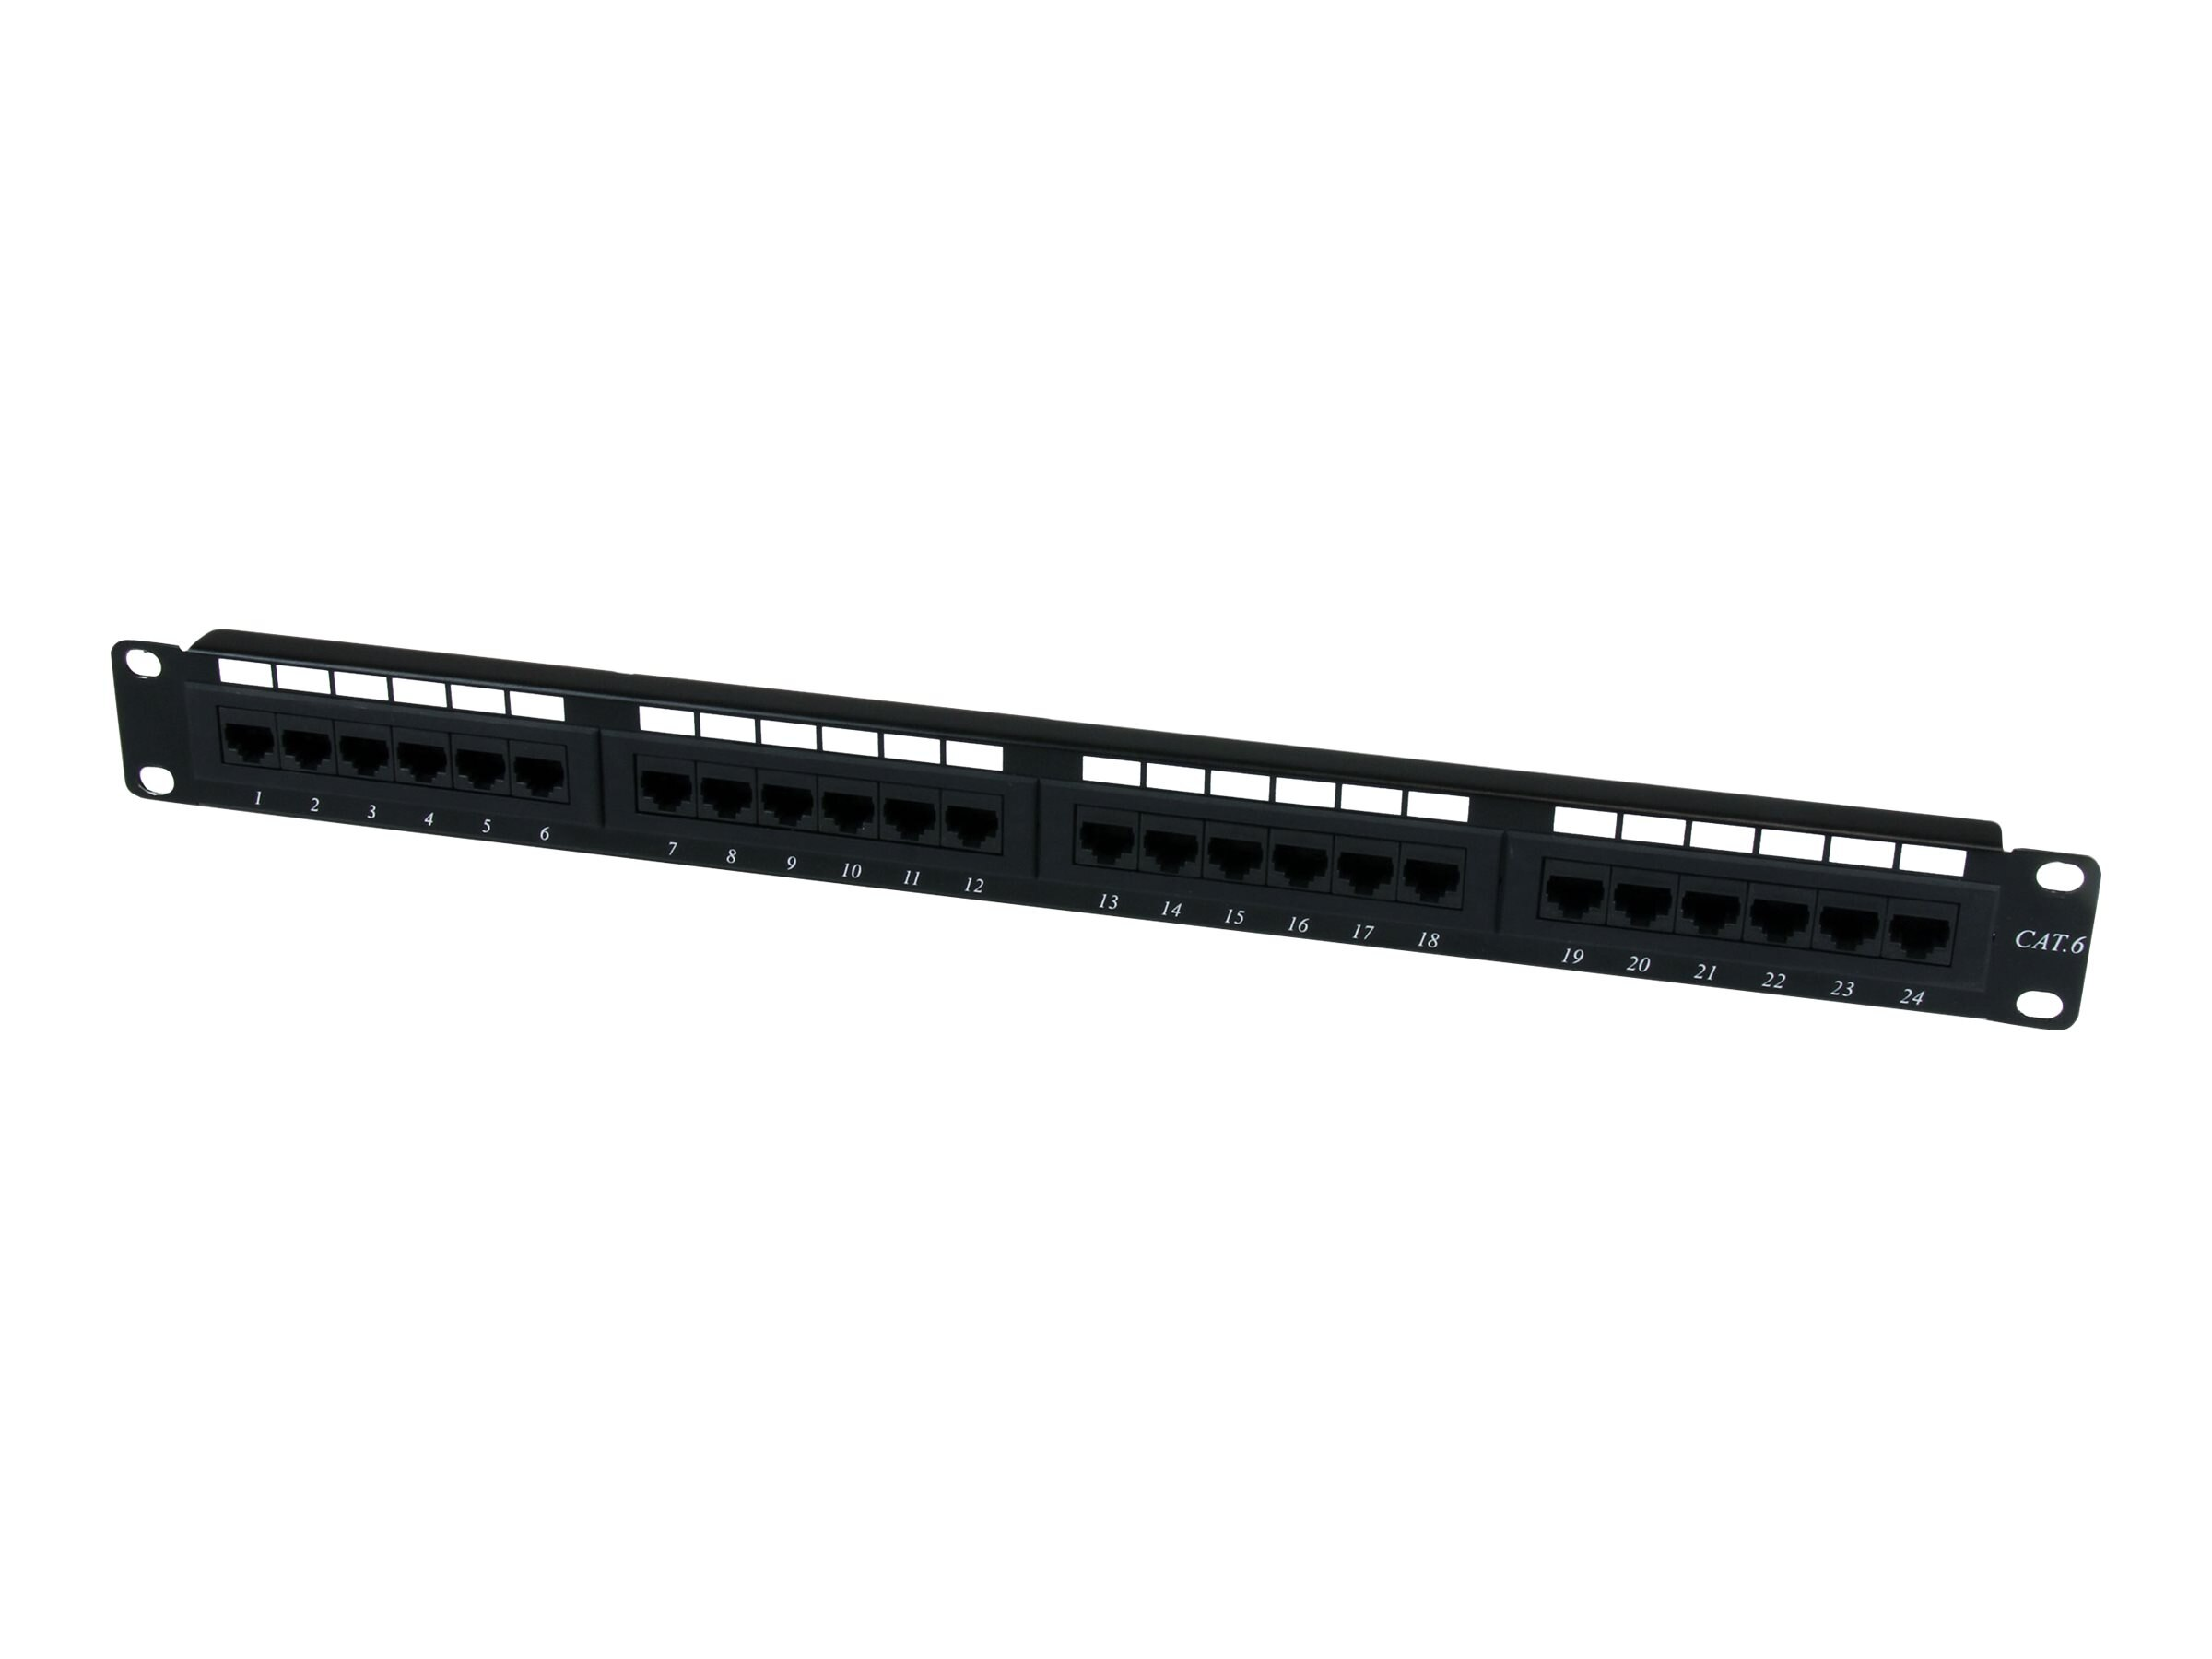 StarTech.com 24 Port 1U Rackmount Cat 6 110 Patch Panel, C6PANEL24